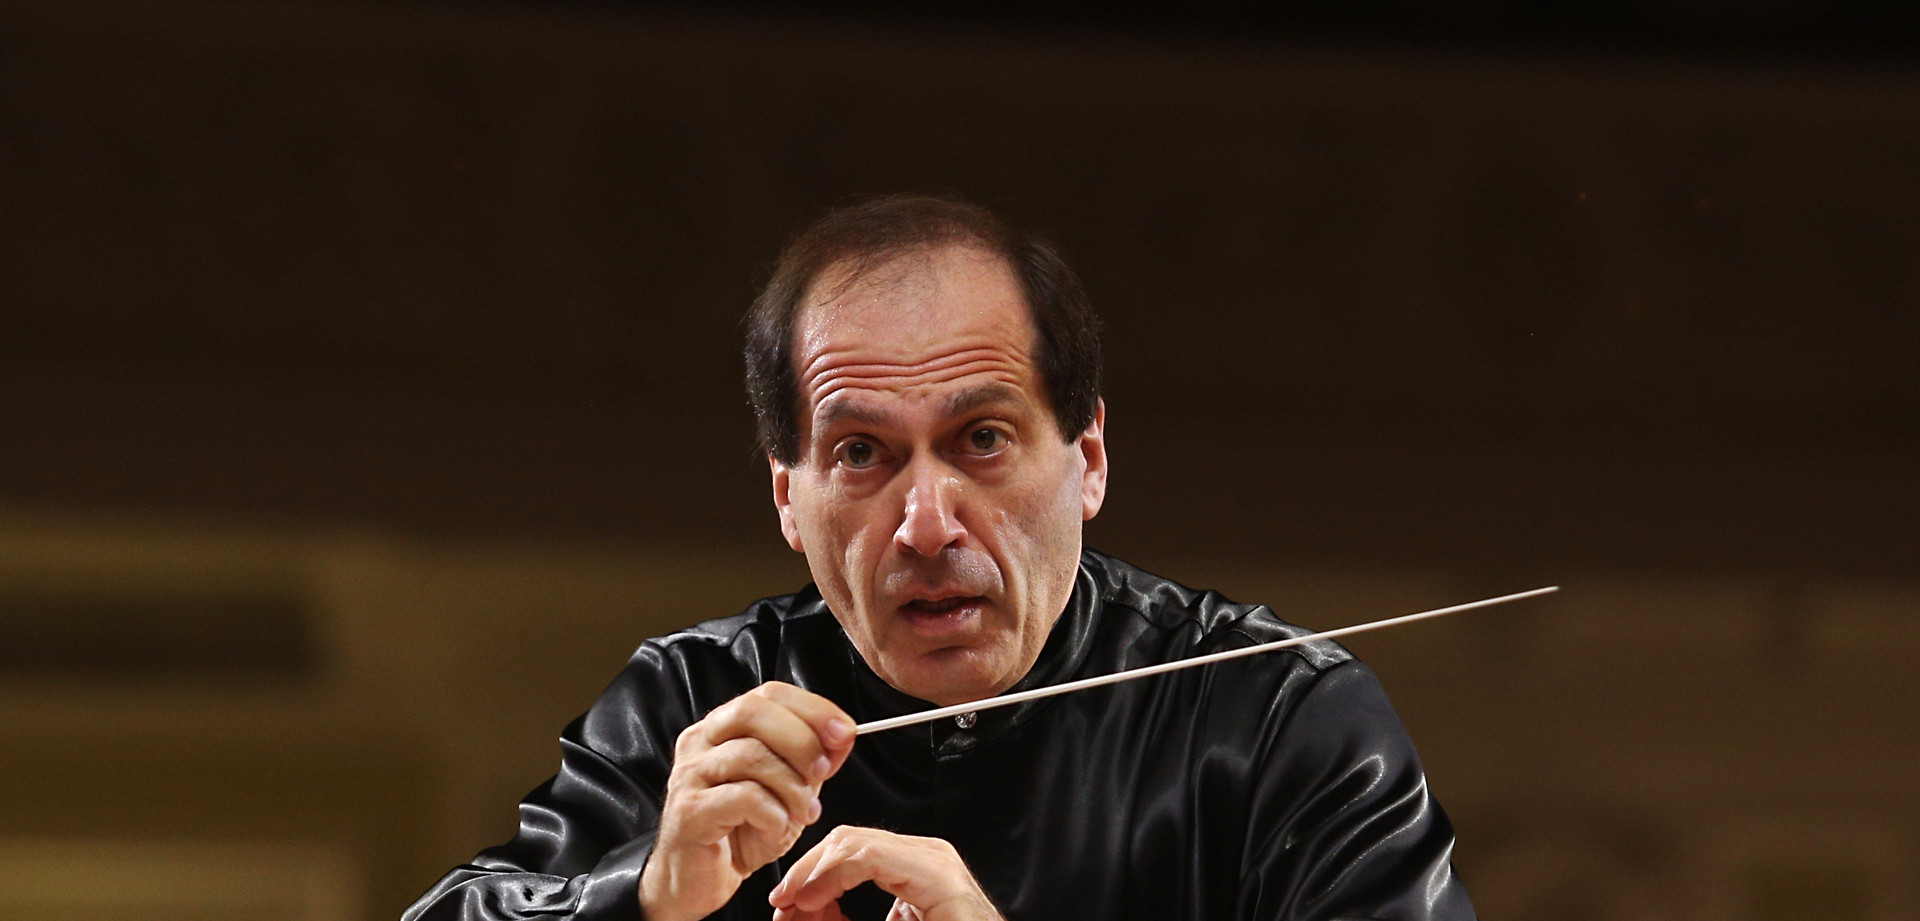 Pavel Kogan, Conductor